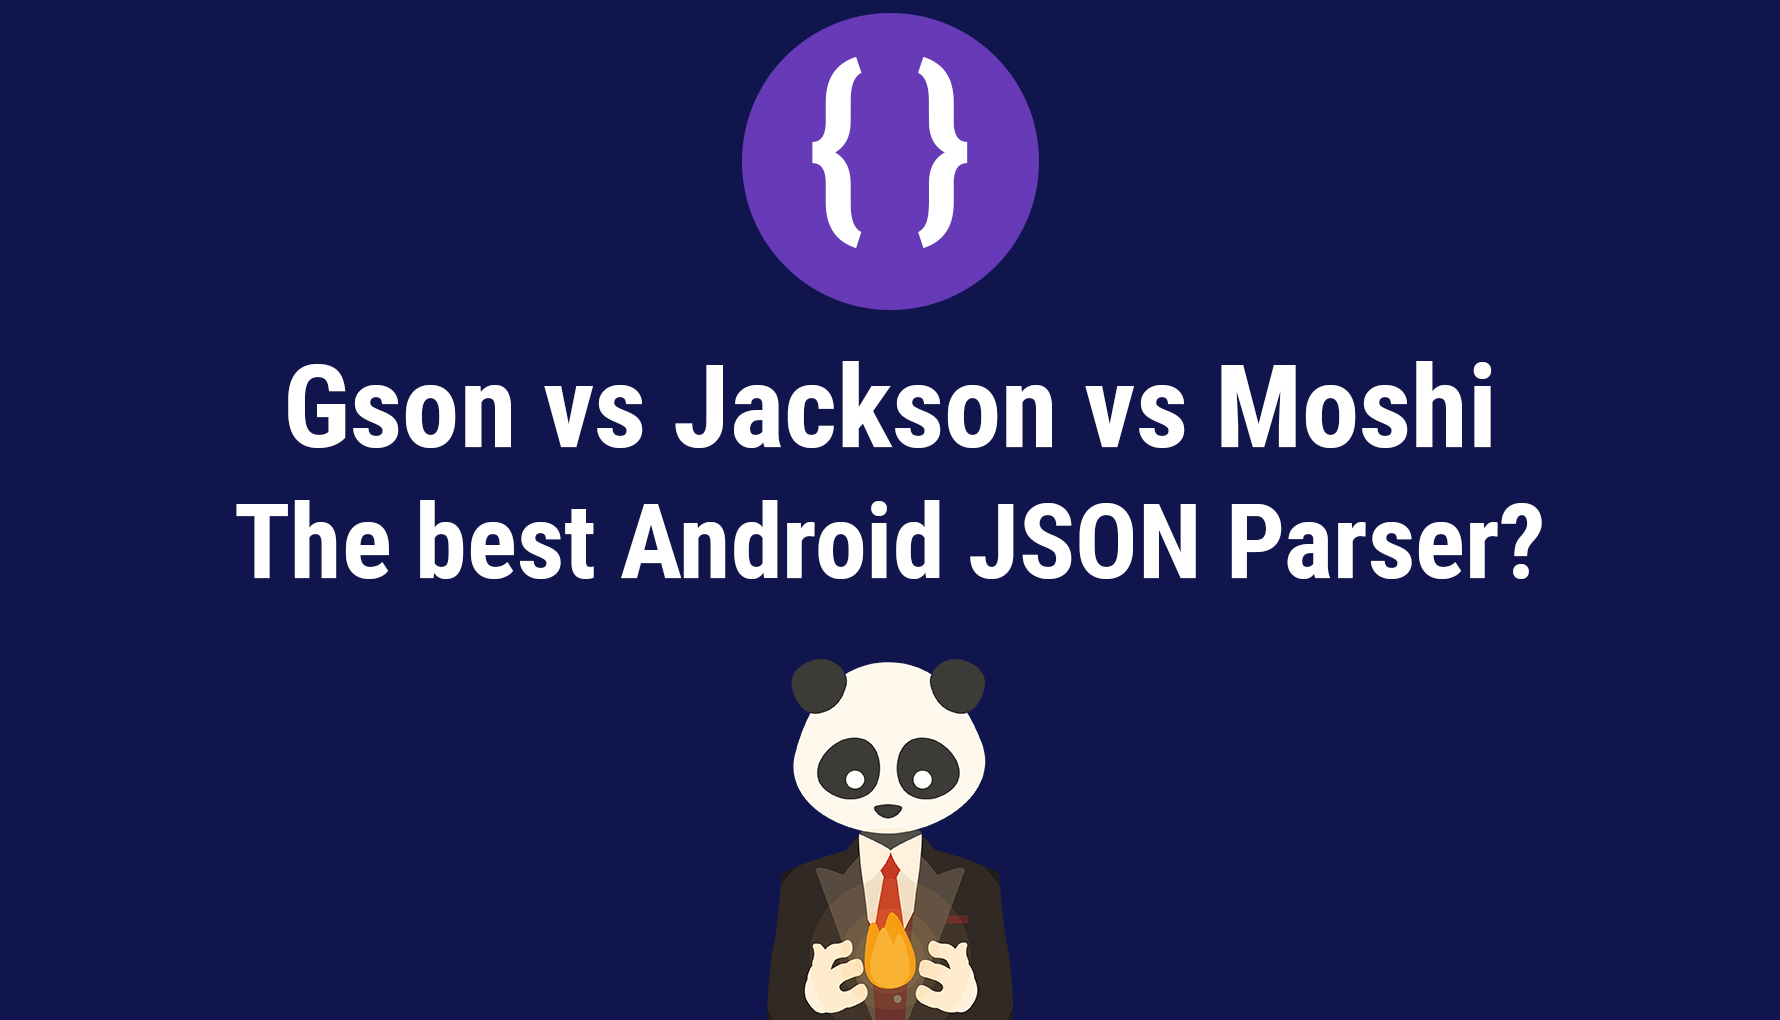 Gson vs Jackson vs Moshi: The Best Android JSON Parser?